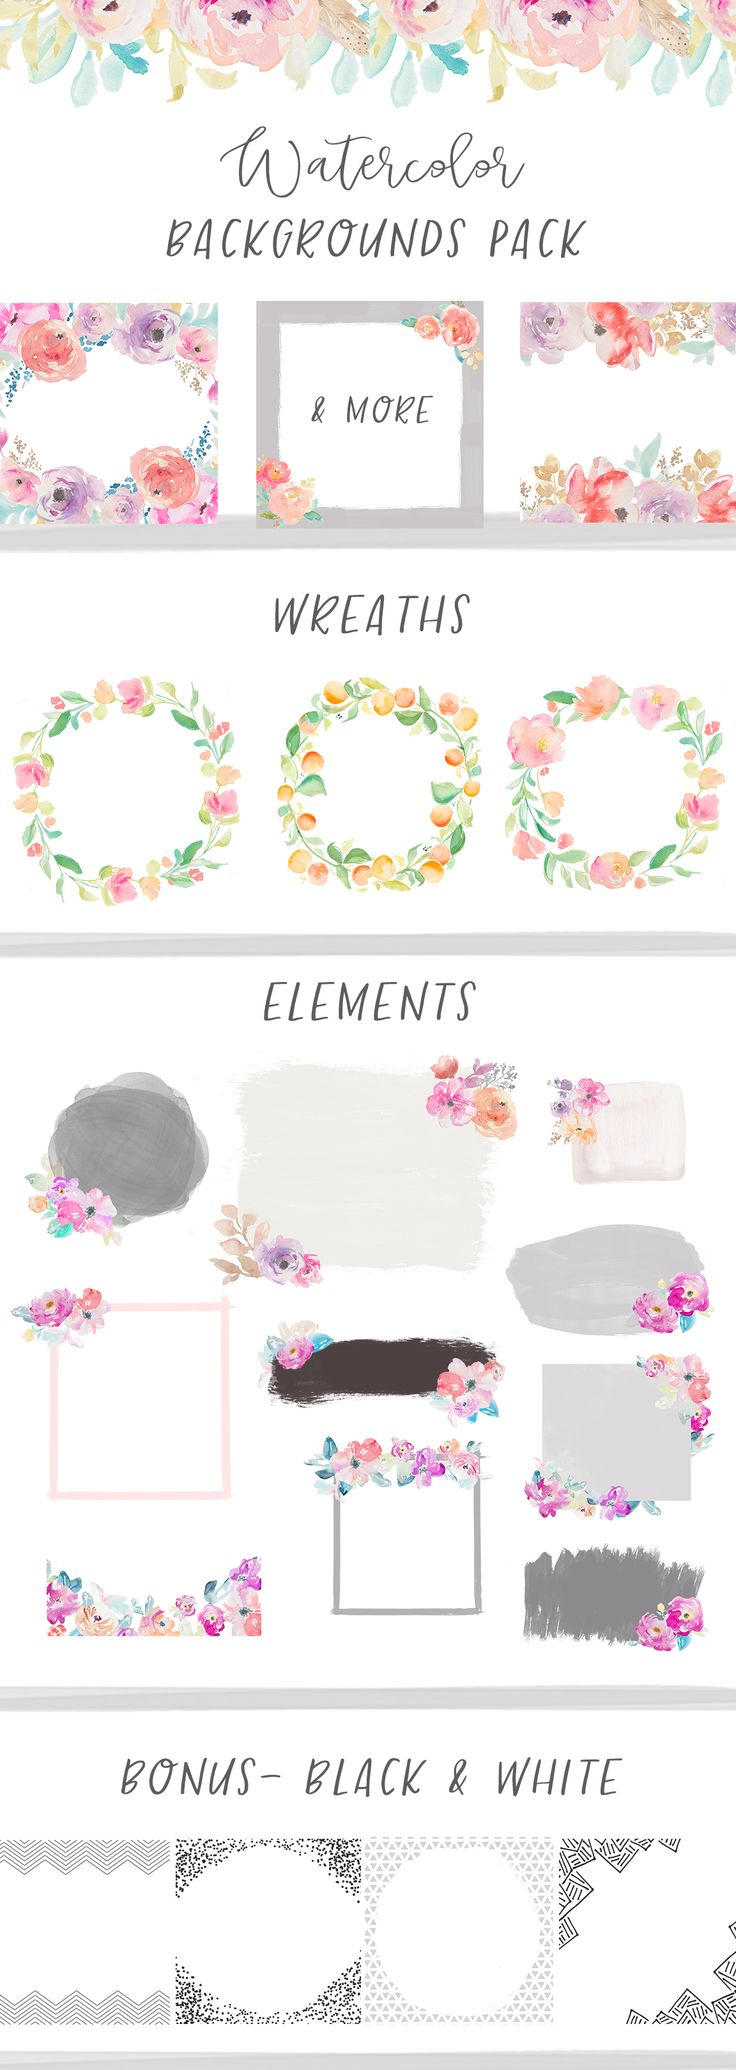 Cute Watercolor Background Images. Watercolor Clip Art Background Graphics. angiemakes.com